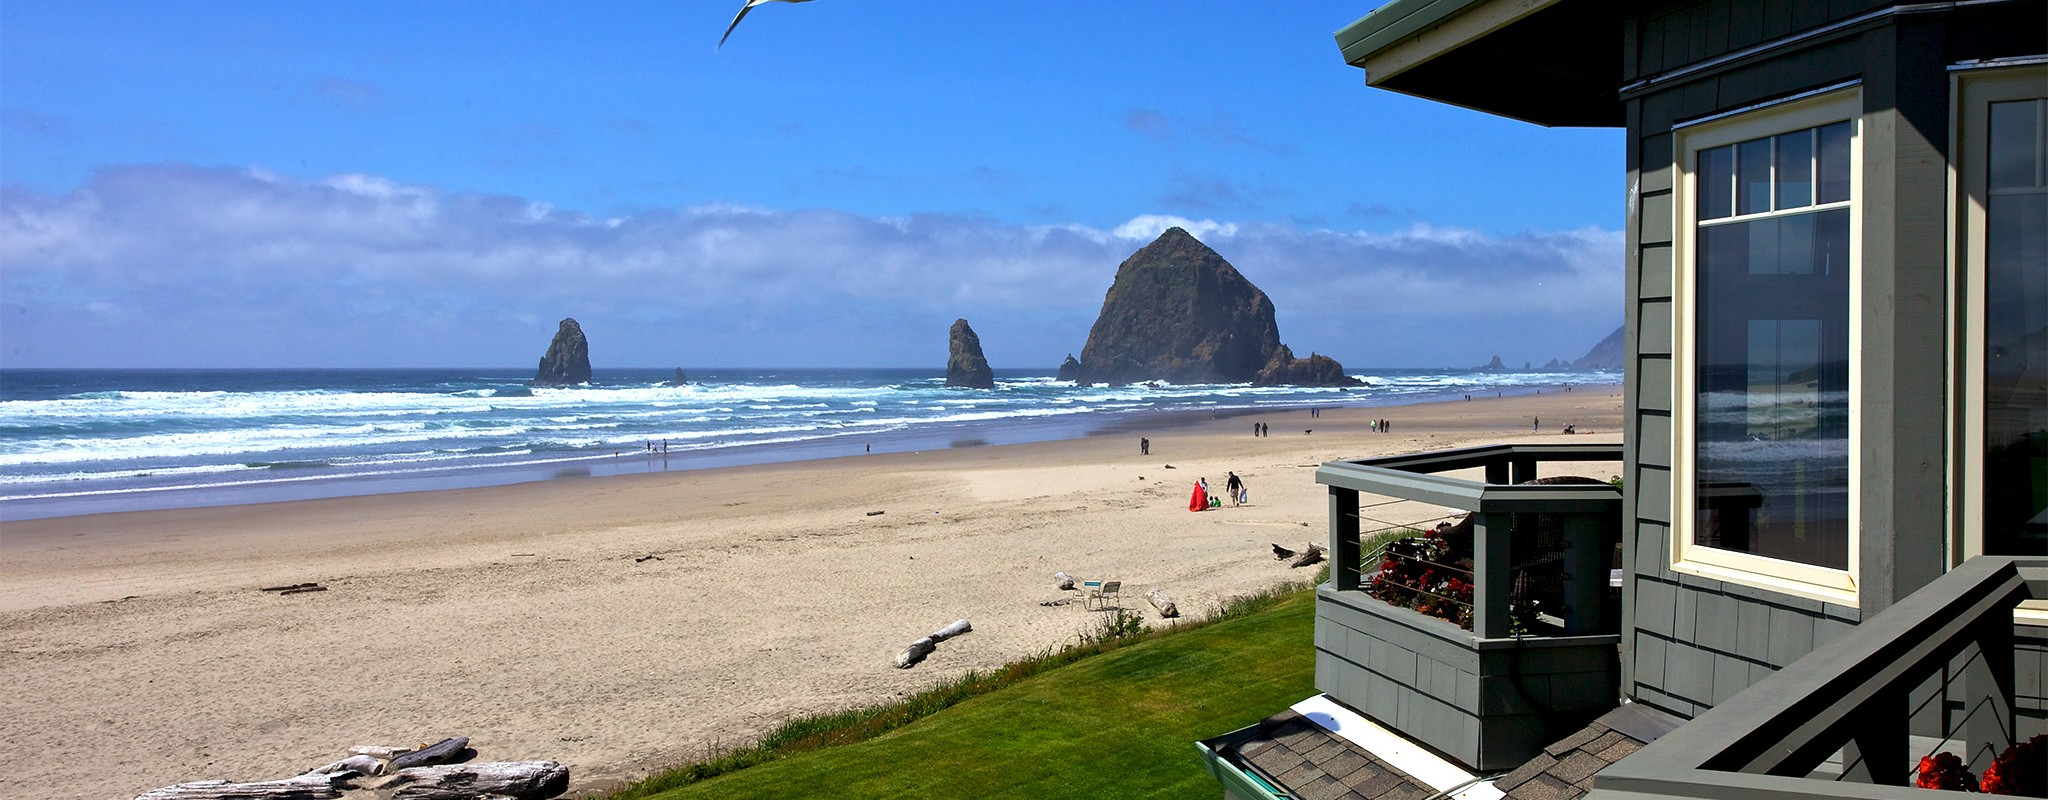 Experience Relaxation in Cannon Beach, Oregon at the Stephanie Inn